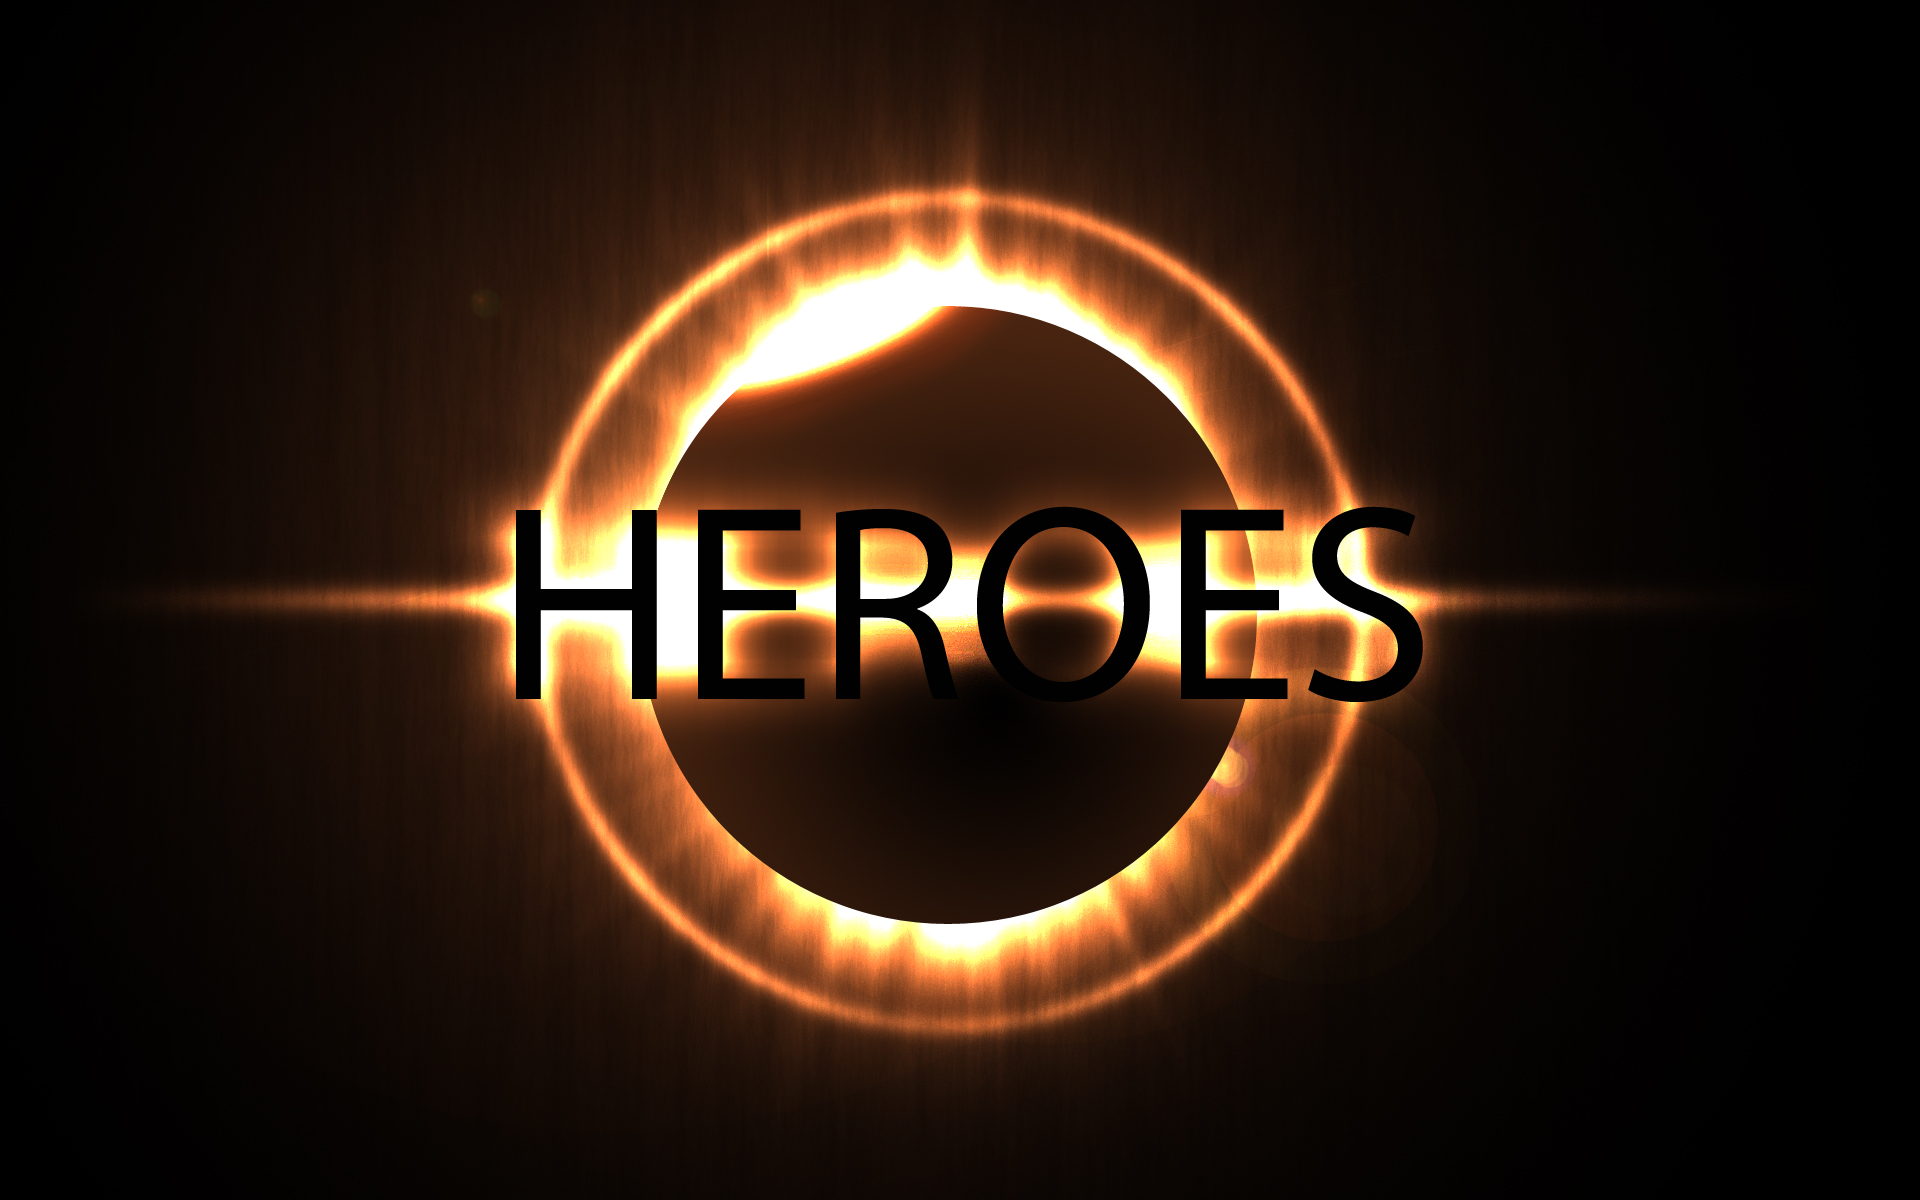 heroes wallpaper by colamix on deviantart